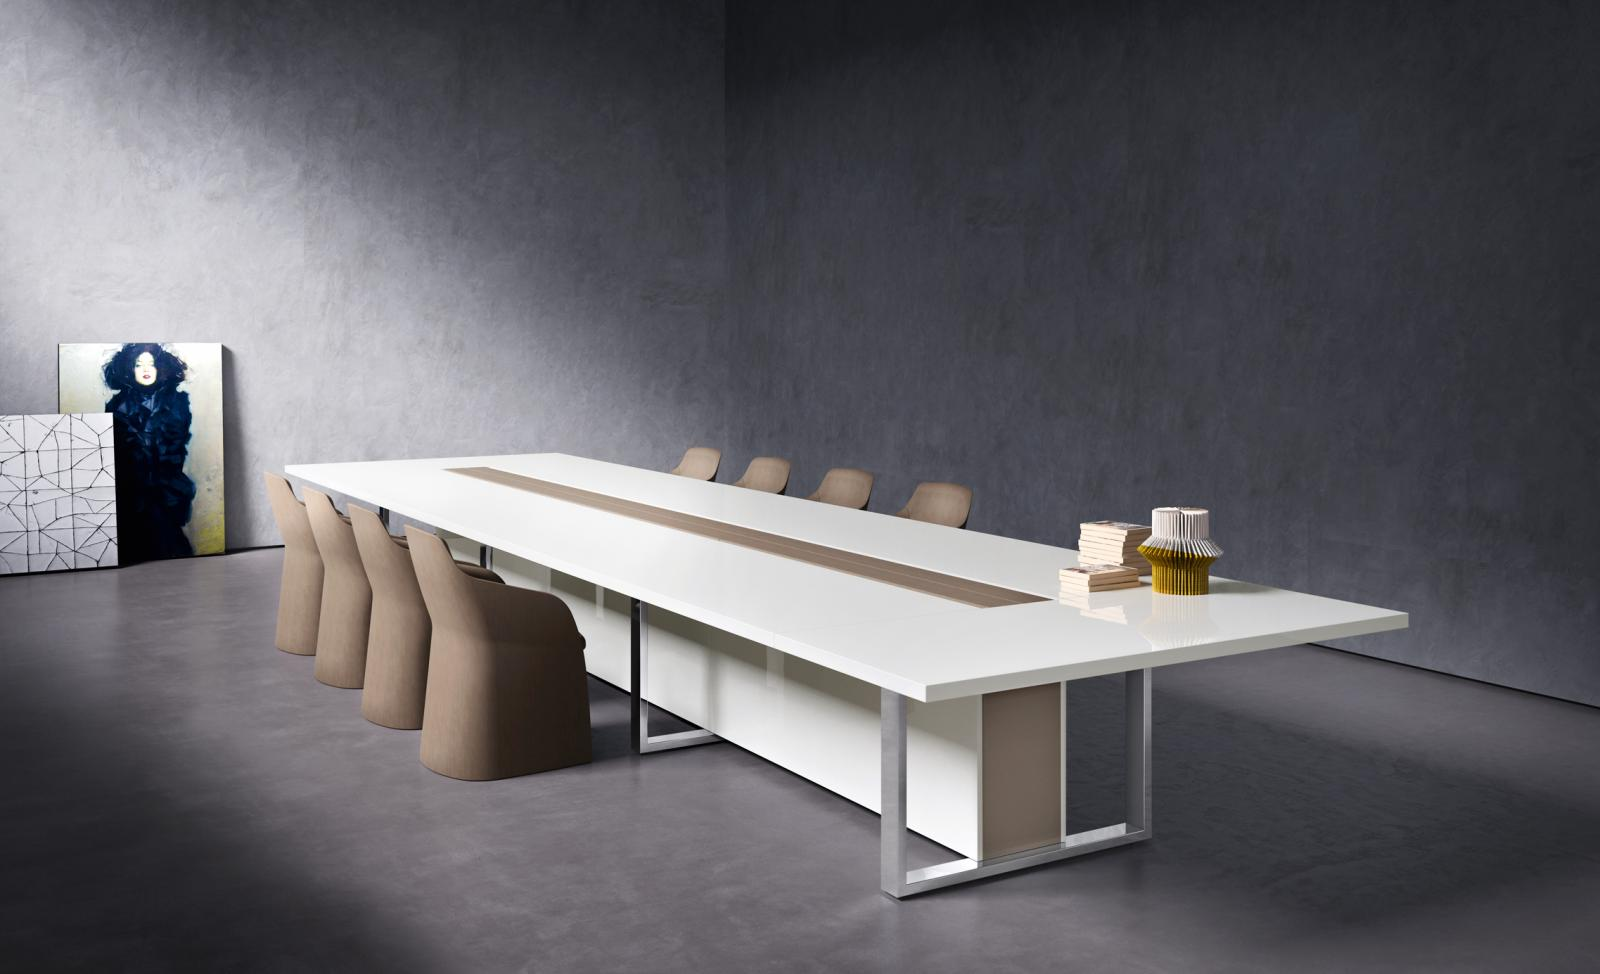 Table De Runion Pont Design Arrondie